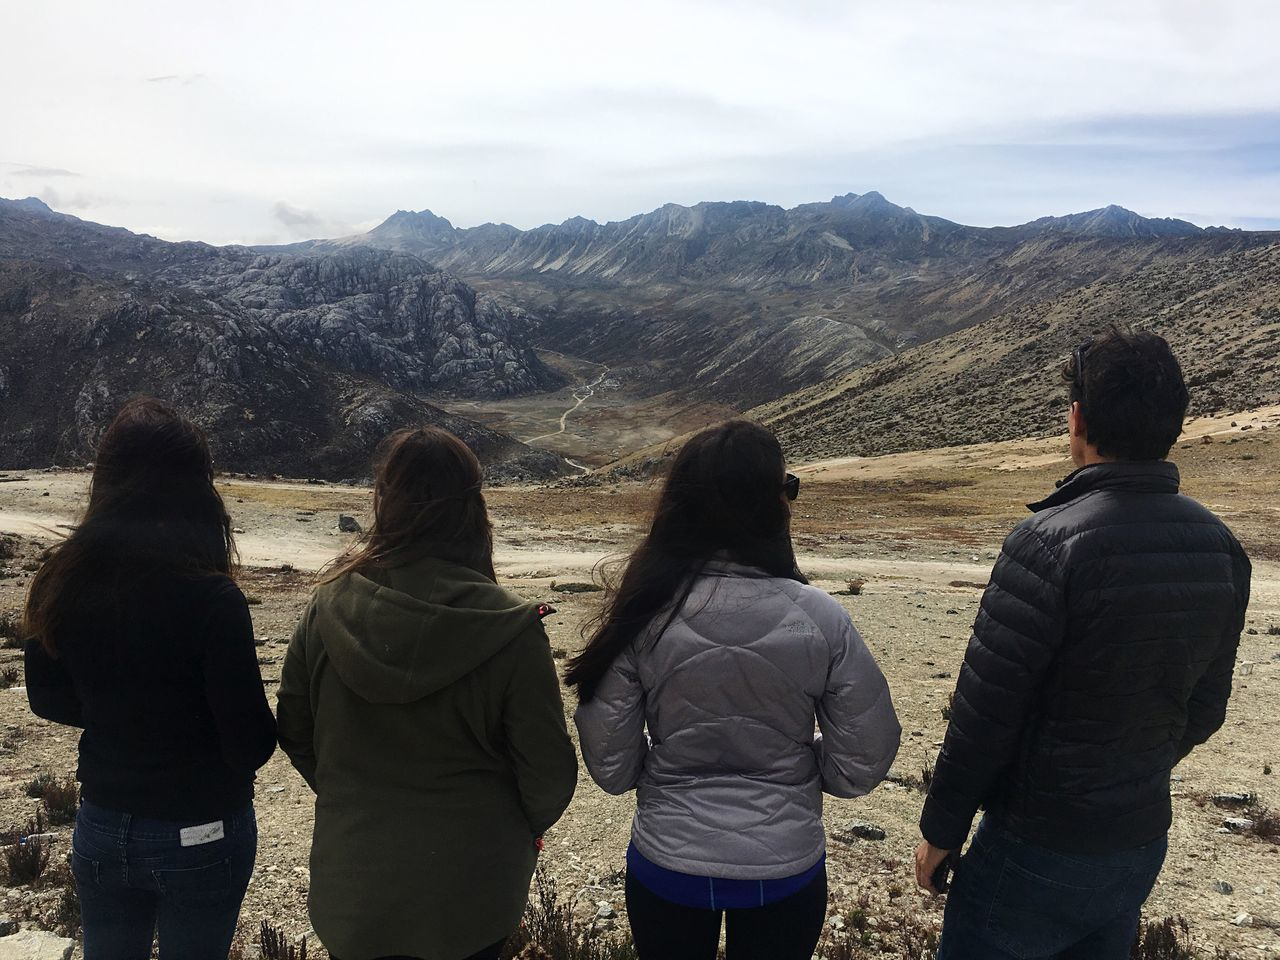 Mountain Rear View Real People Beauty In Nature Leisure Activity Sky Mountain Range Scenics Nature Four People Five People Hiking Lifestyles Landscape Outdoors Vacations Day Women Friendship Tranquility Men Andes Andes Mountains Andesmountains Non-urban Scene